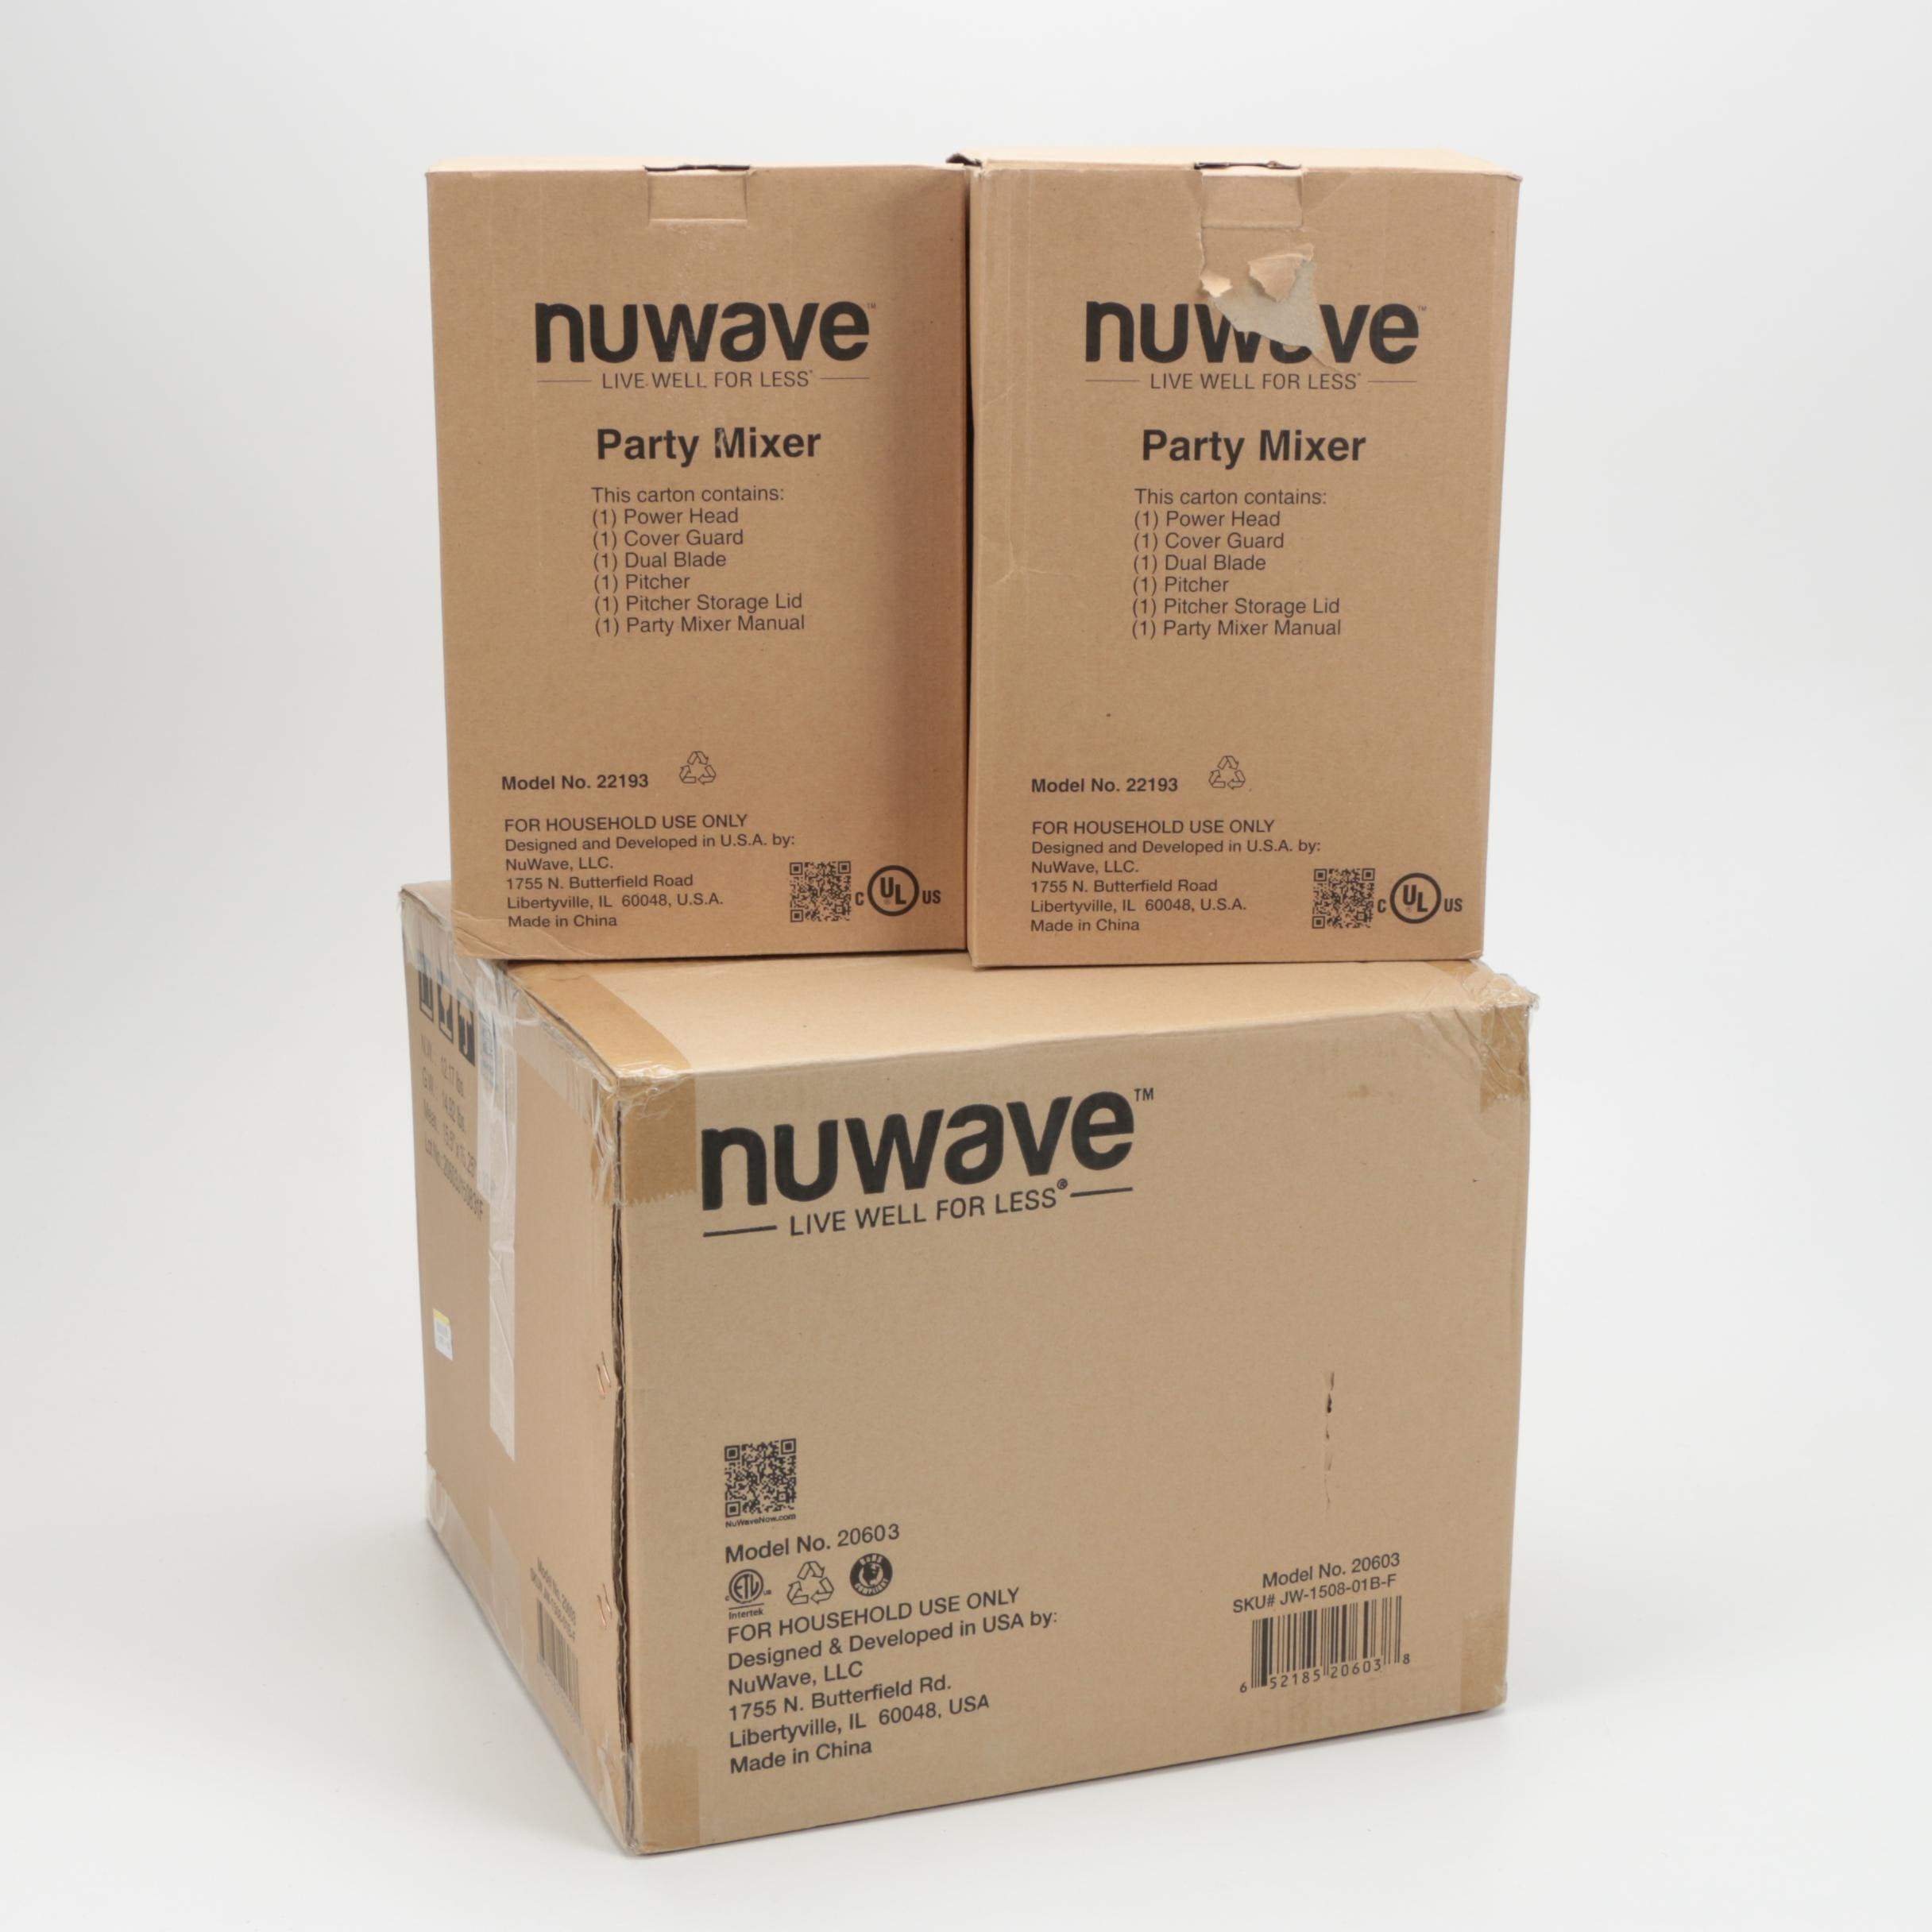 Nuwave Infrared Oven and Party Mixers